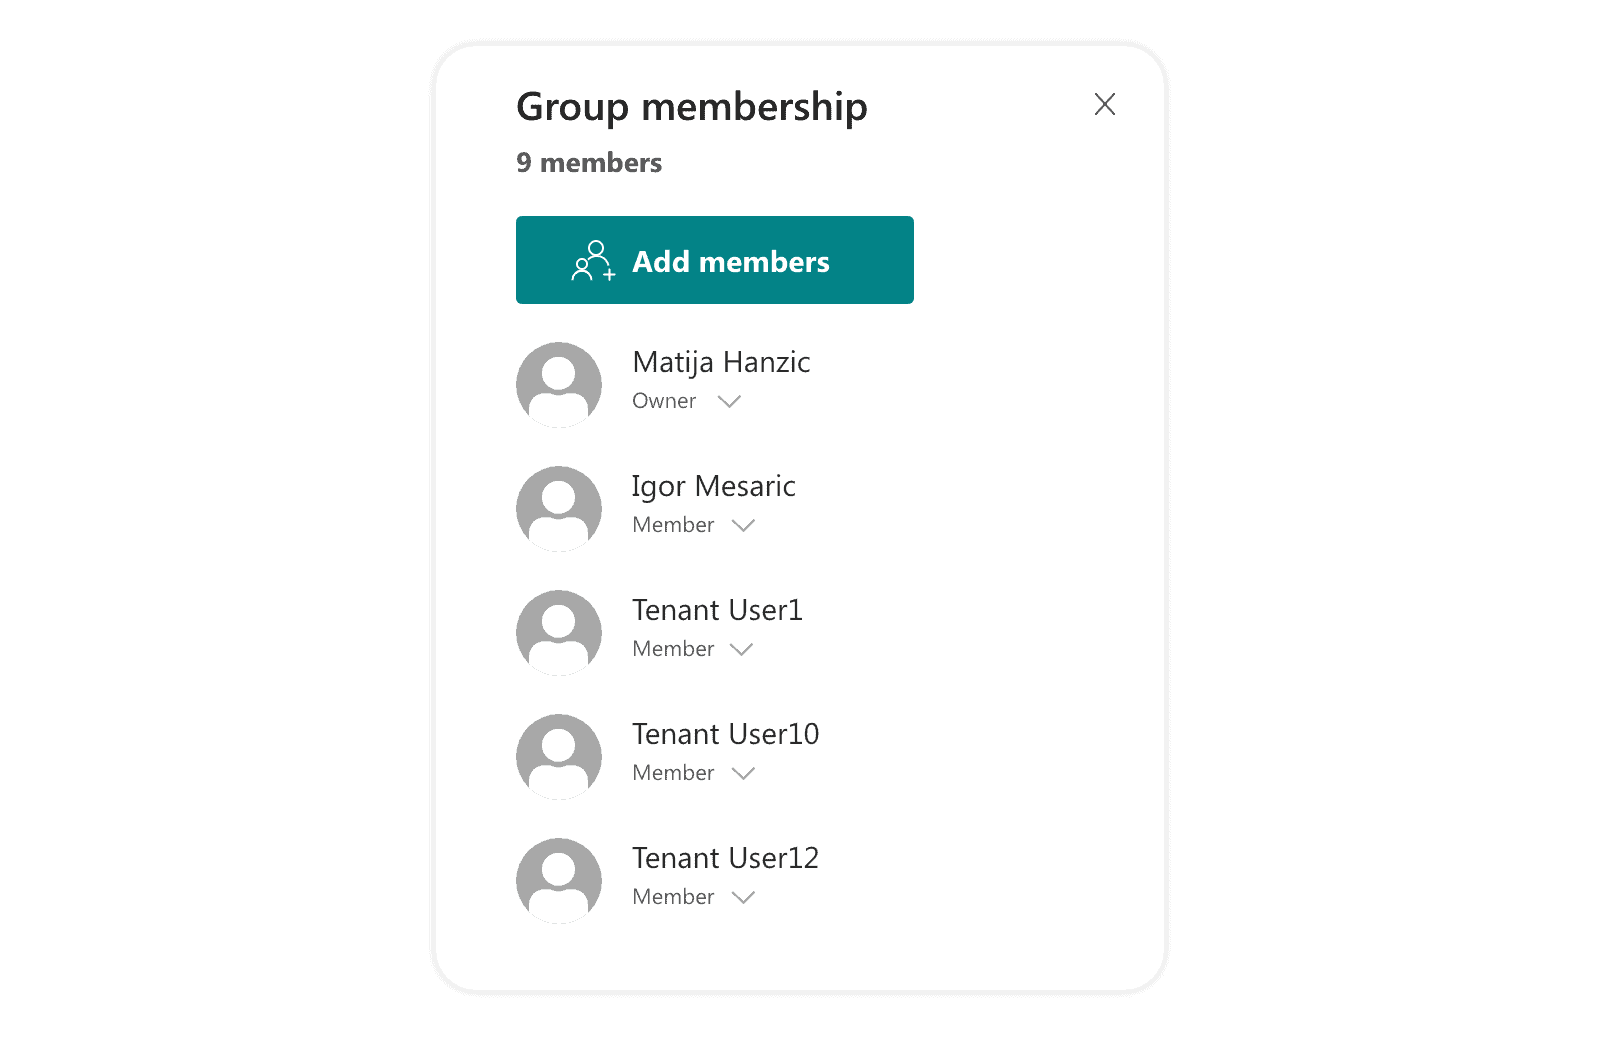 Group member role